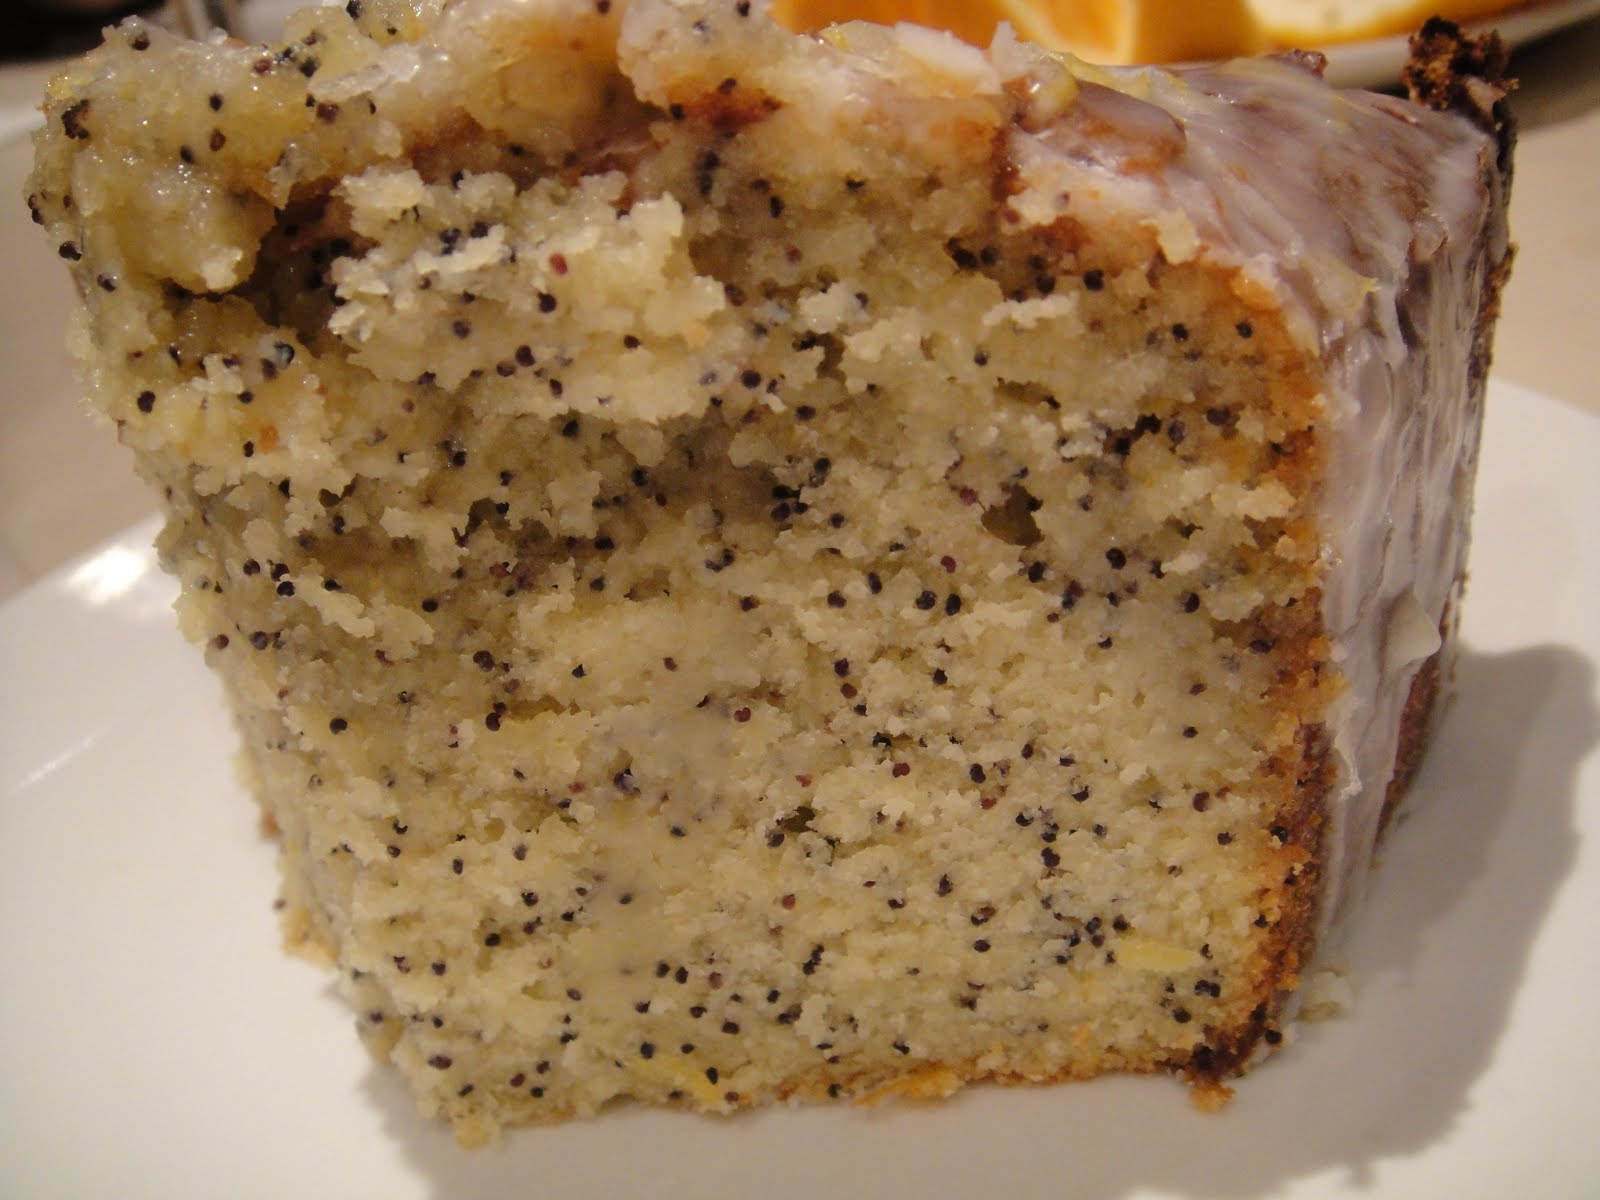 Moist banana cake recipe jamie oliver